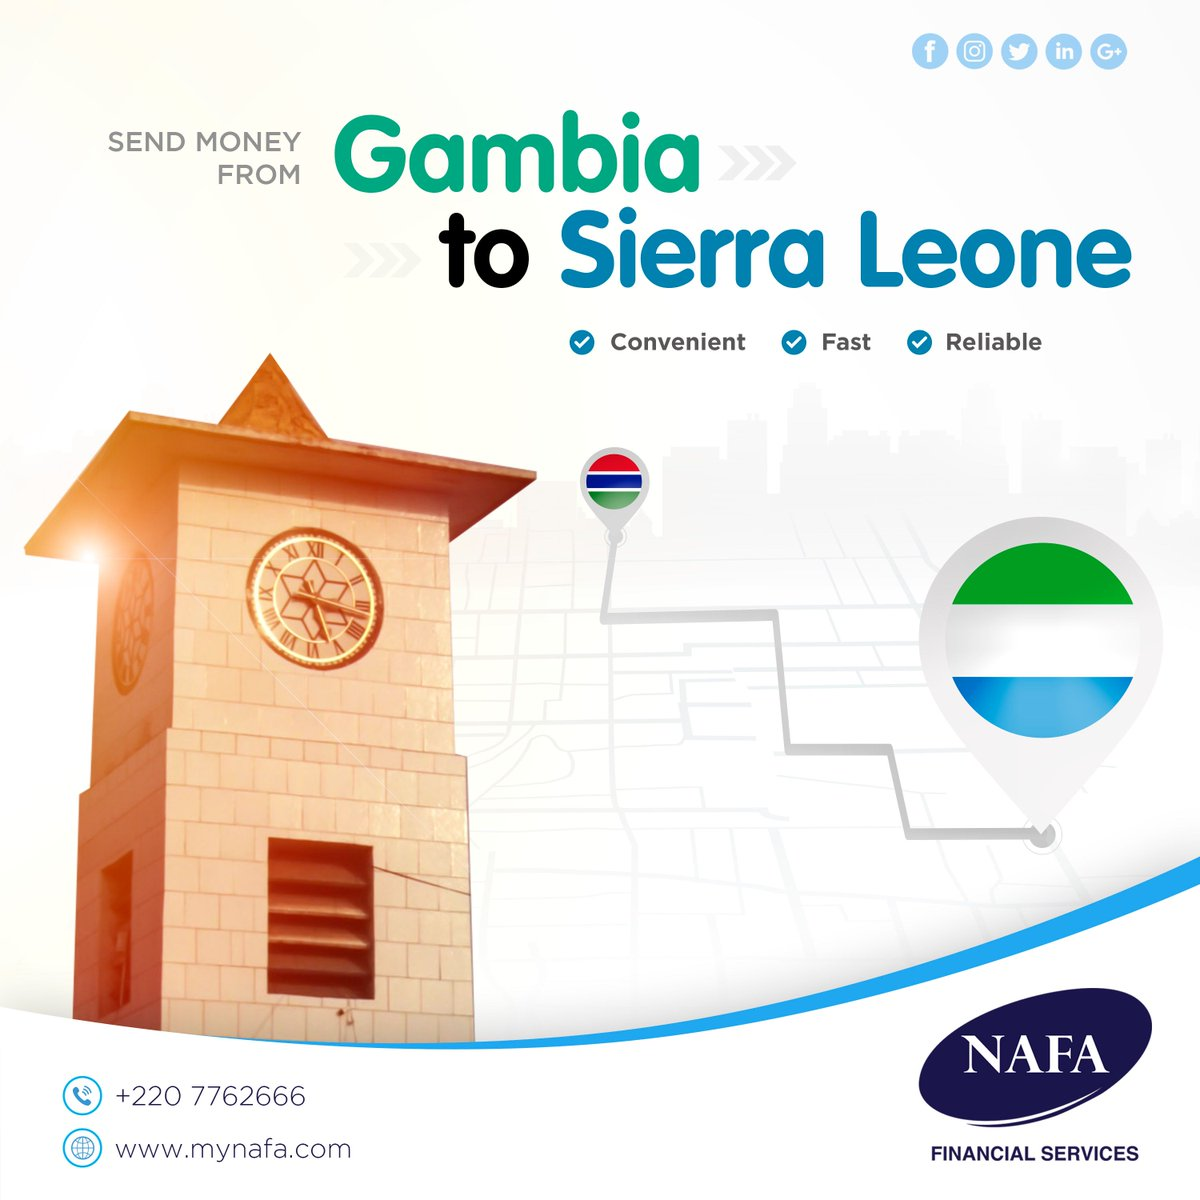 Send Money From Gambia To Sierra Leone With Zero Hle Contact Nafa Financial Services 2207762666 We Offer Great Rates And Exceptional Service